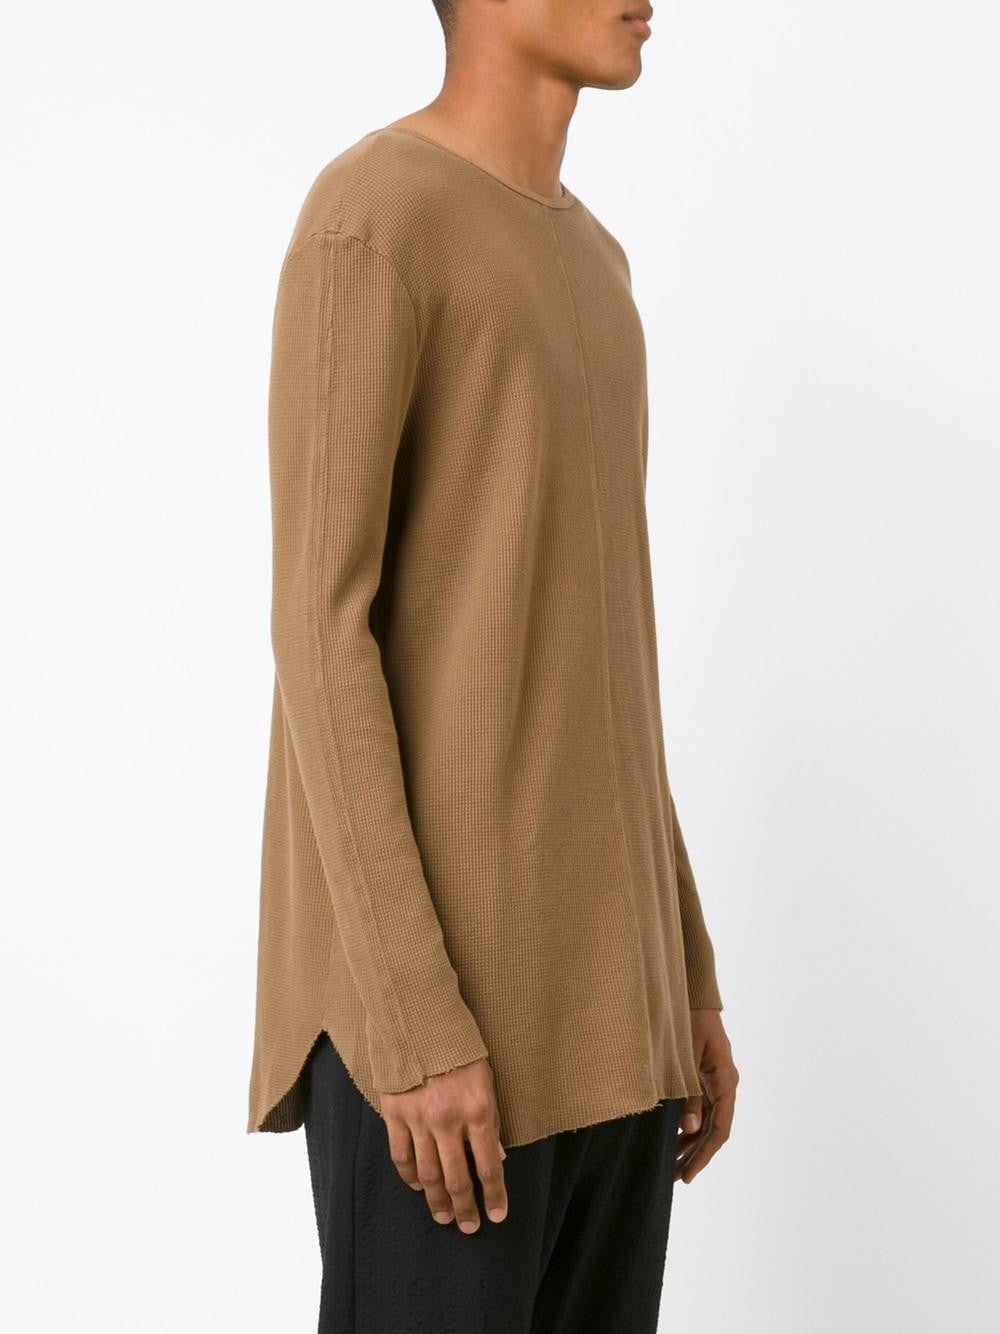 Cotton Thermal | KDP-15010813 L/S CREW THERMAL